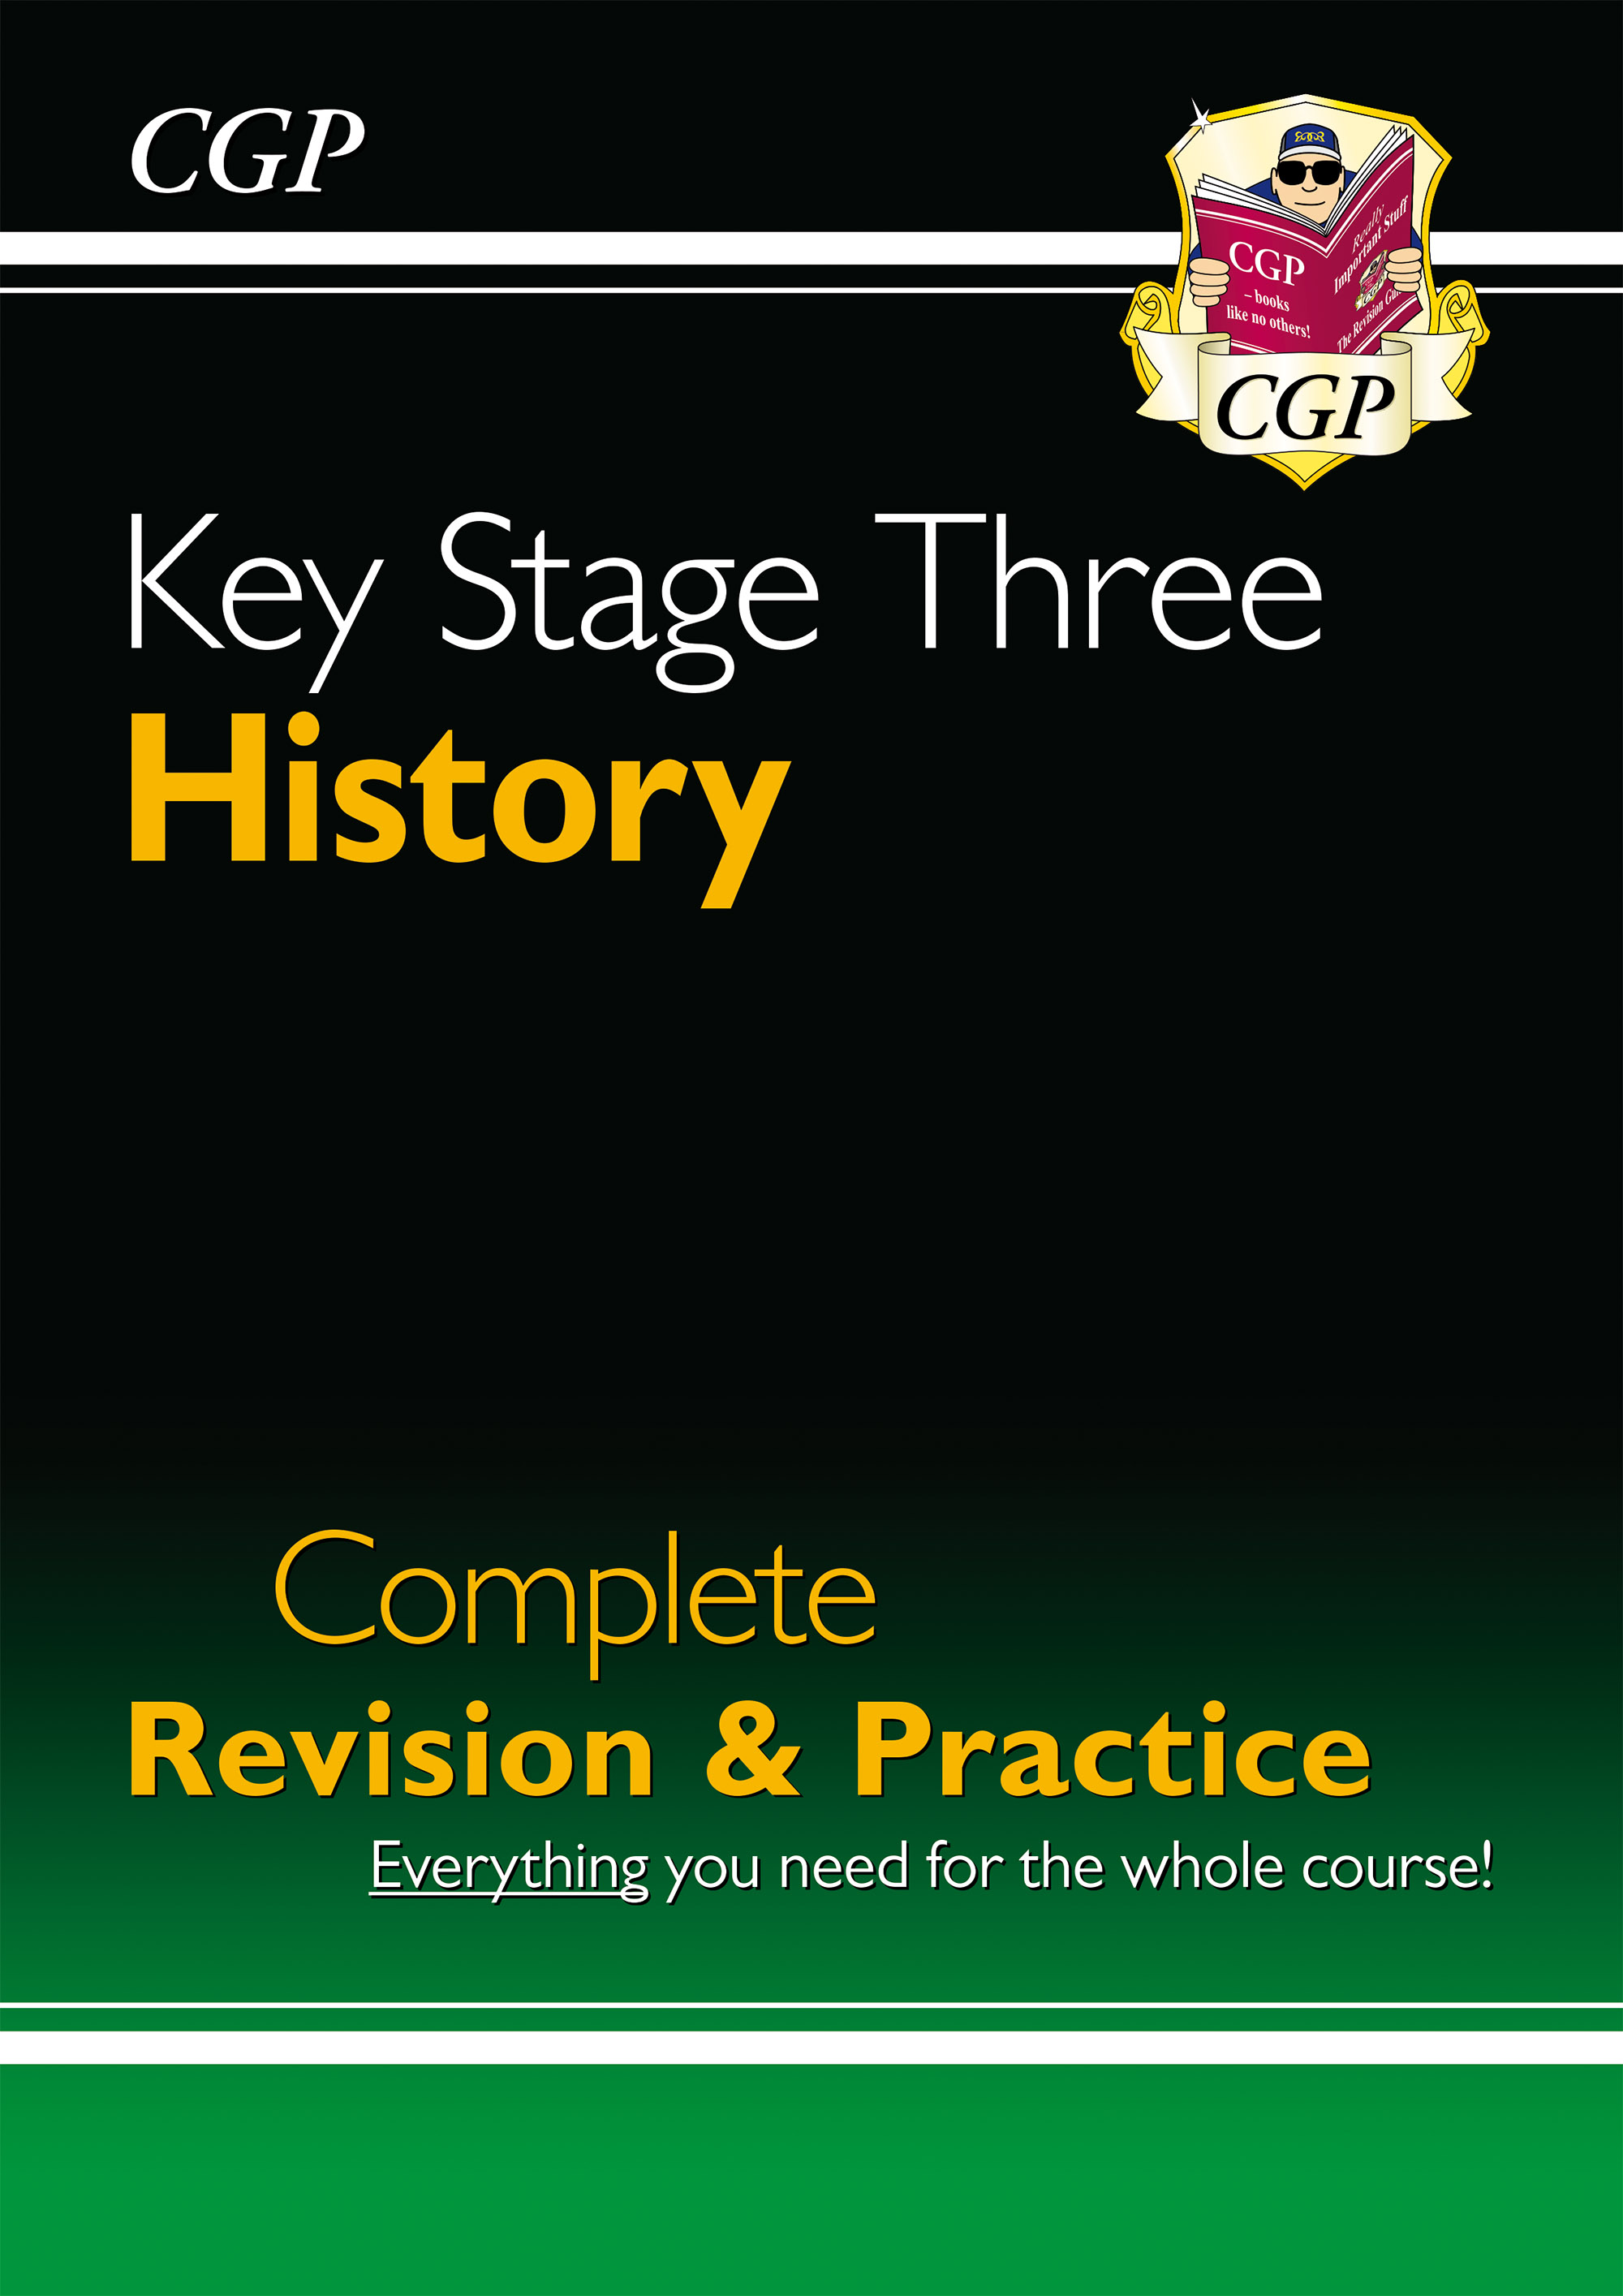 HHS34DK - New KS3 History Complete Revision & Practice